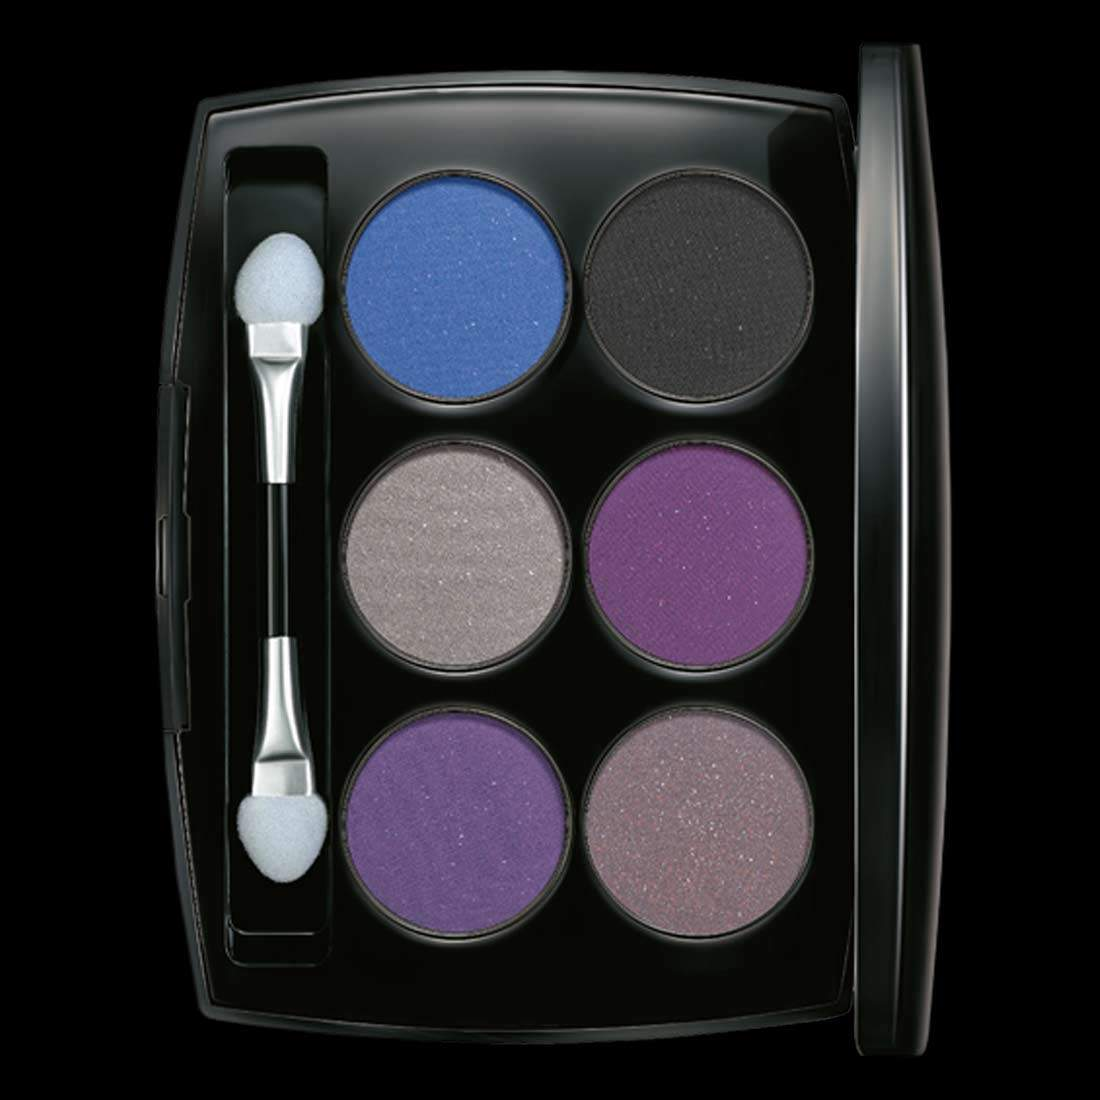 Lakme Absolute Illuminating Eye Shadow in Silver, price on request